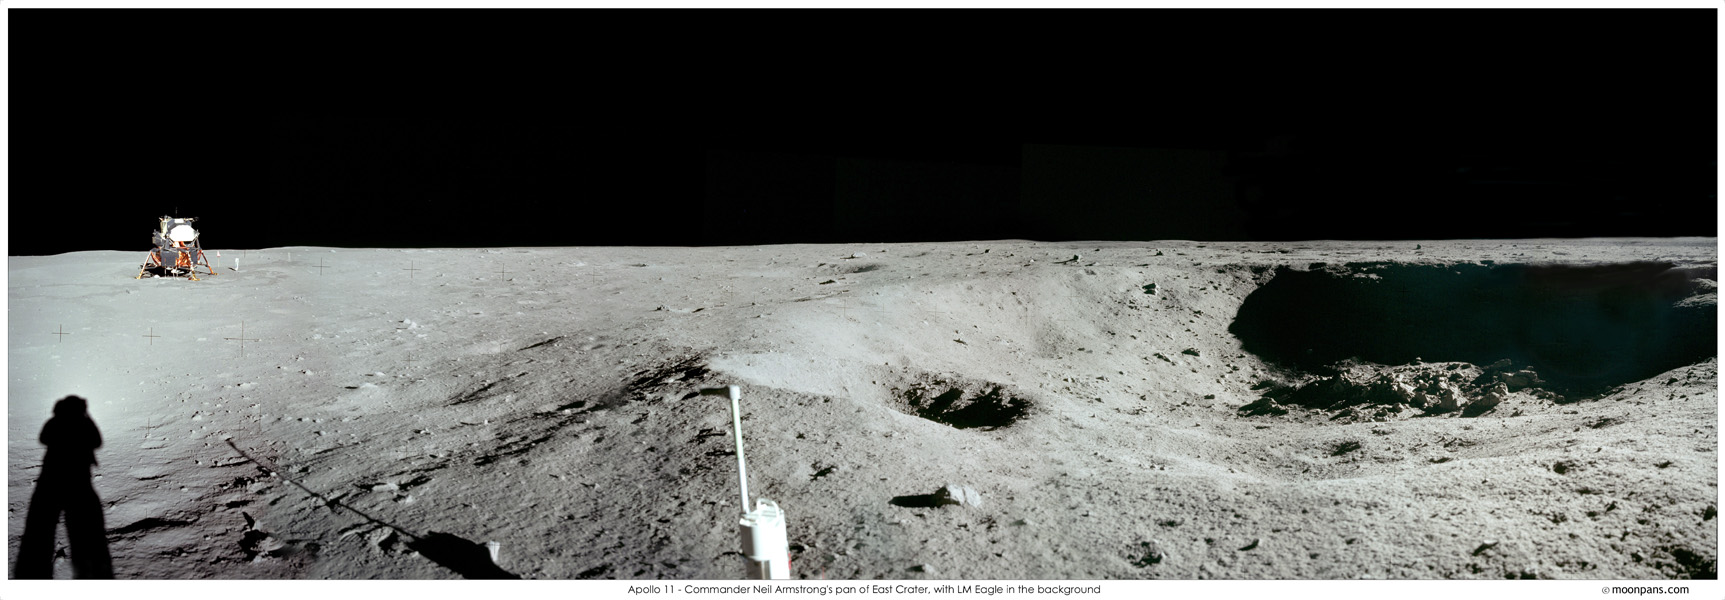 Bunnies on the Moon? 7 Lunar Myths Apollo 11 Debunked